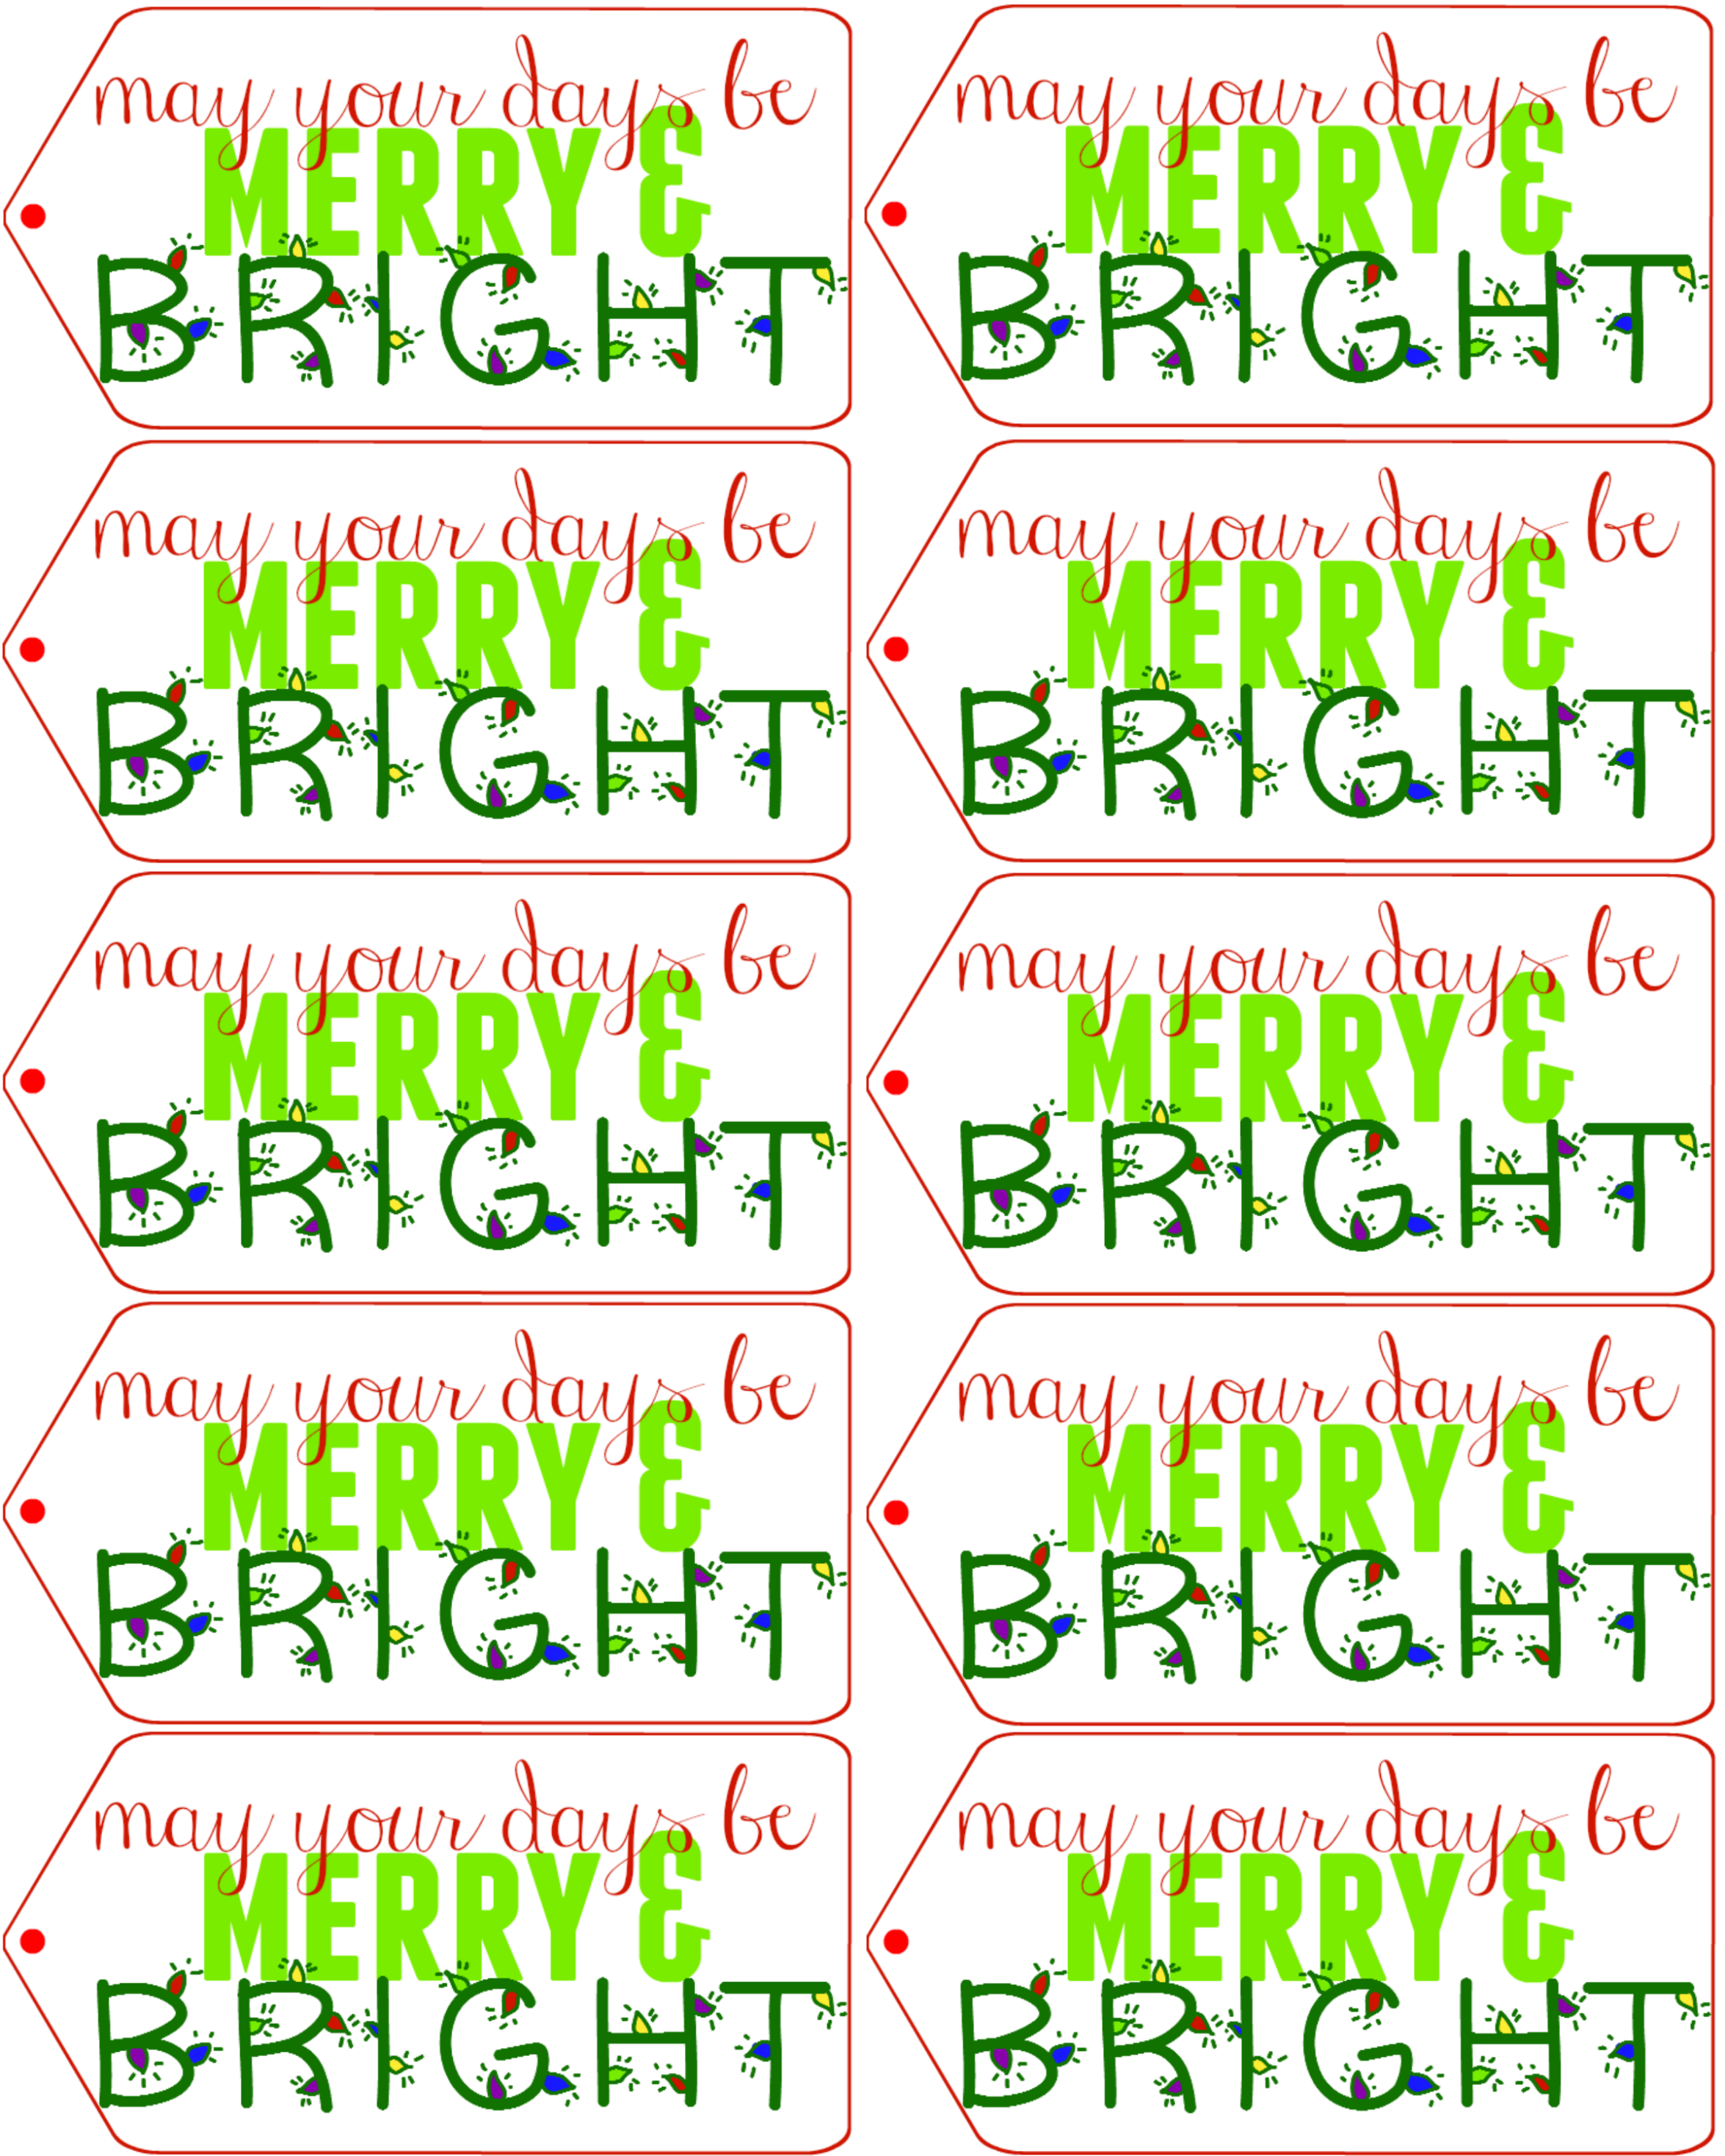 Holiday postmark clipart snowflake image royalty free download May your days be merry & bright